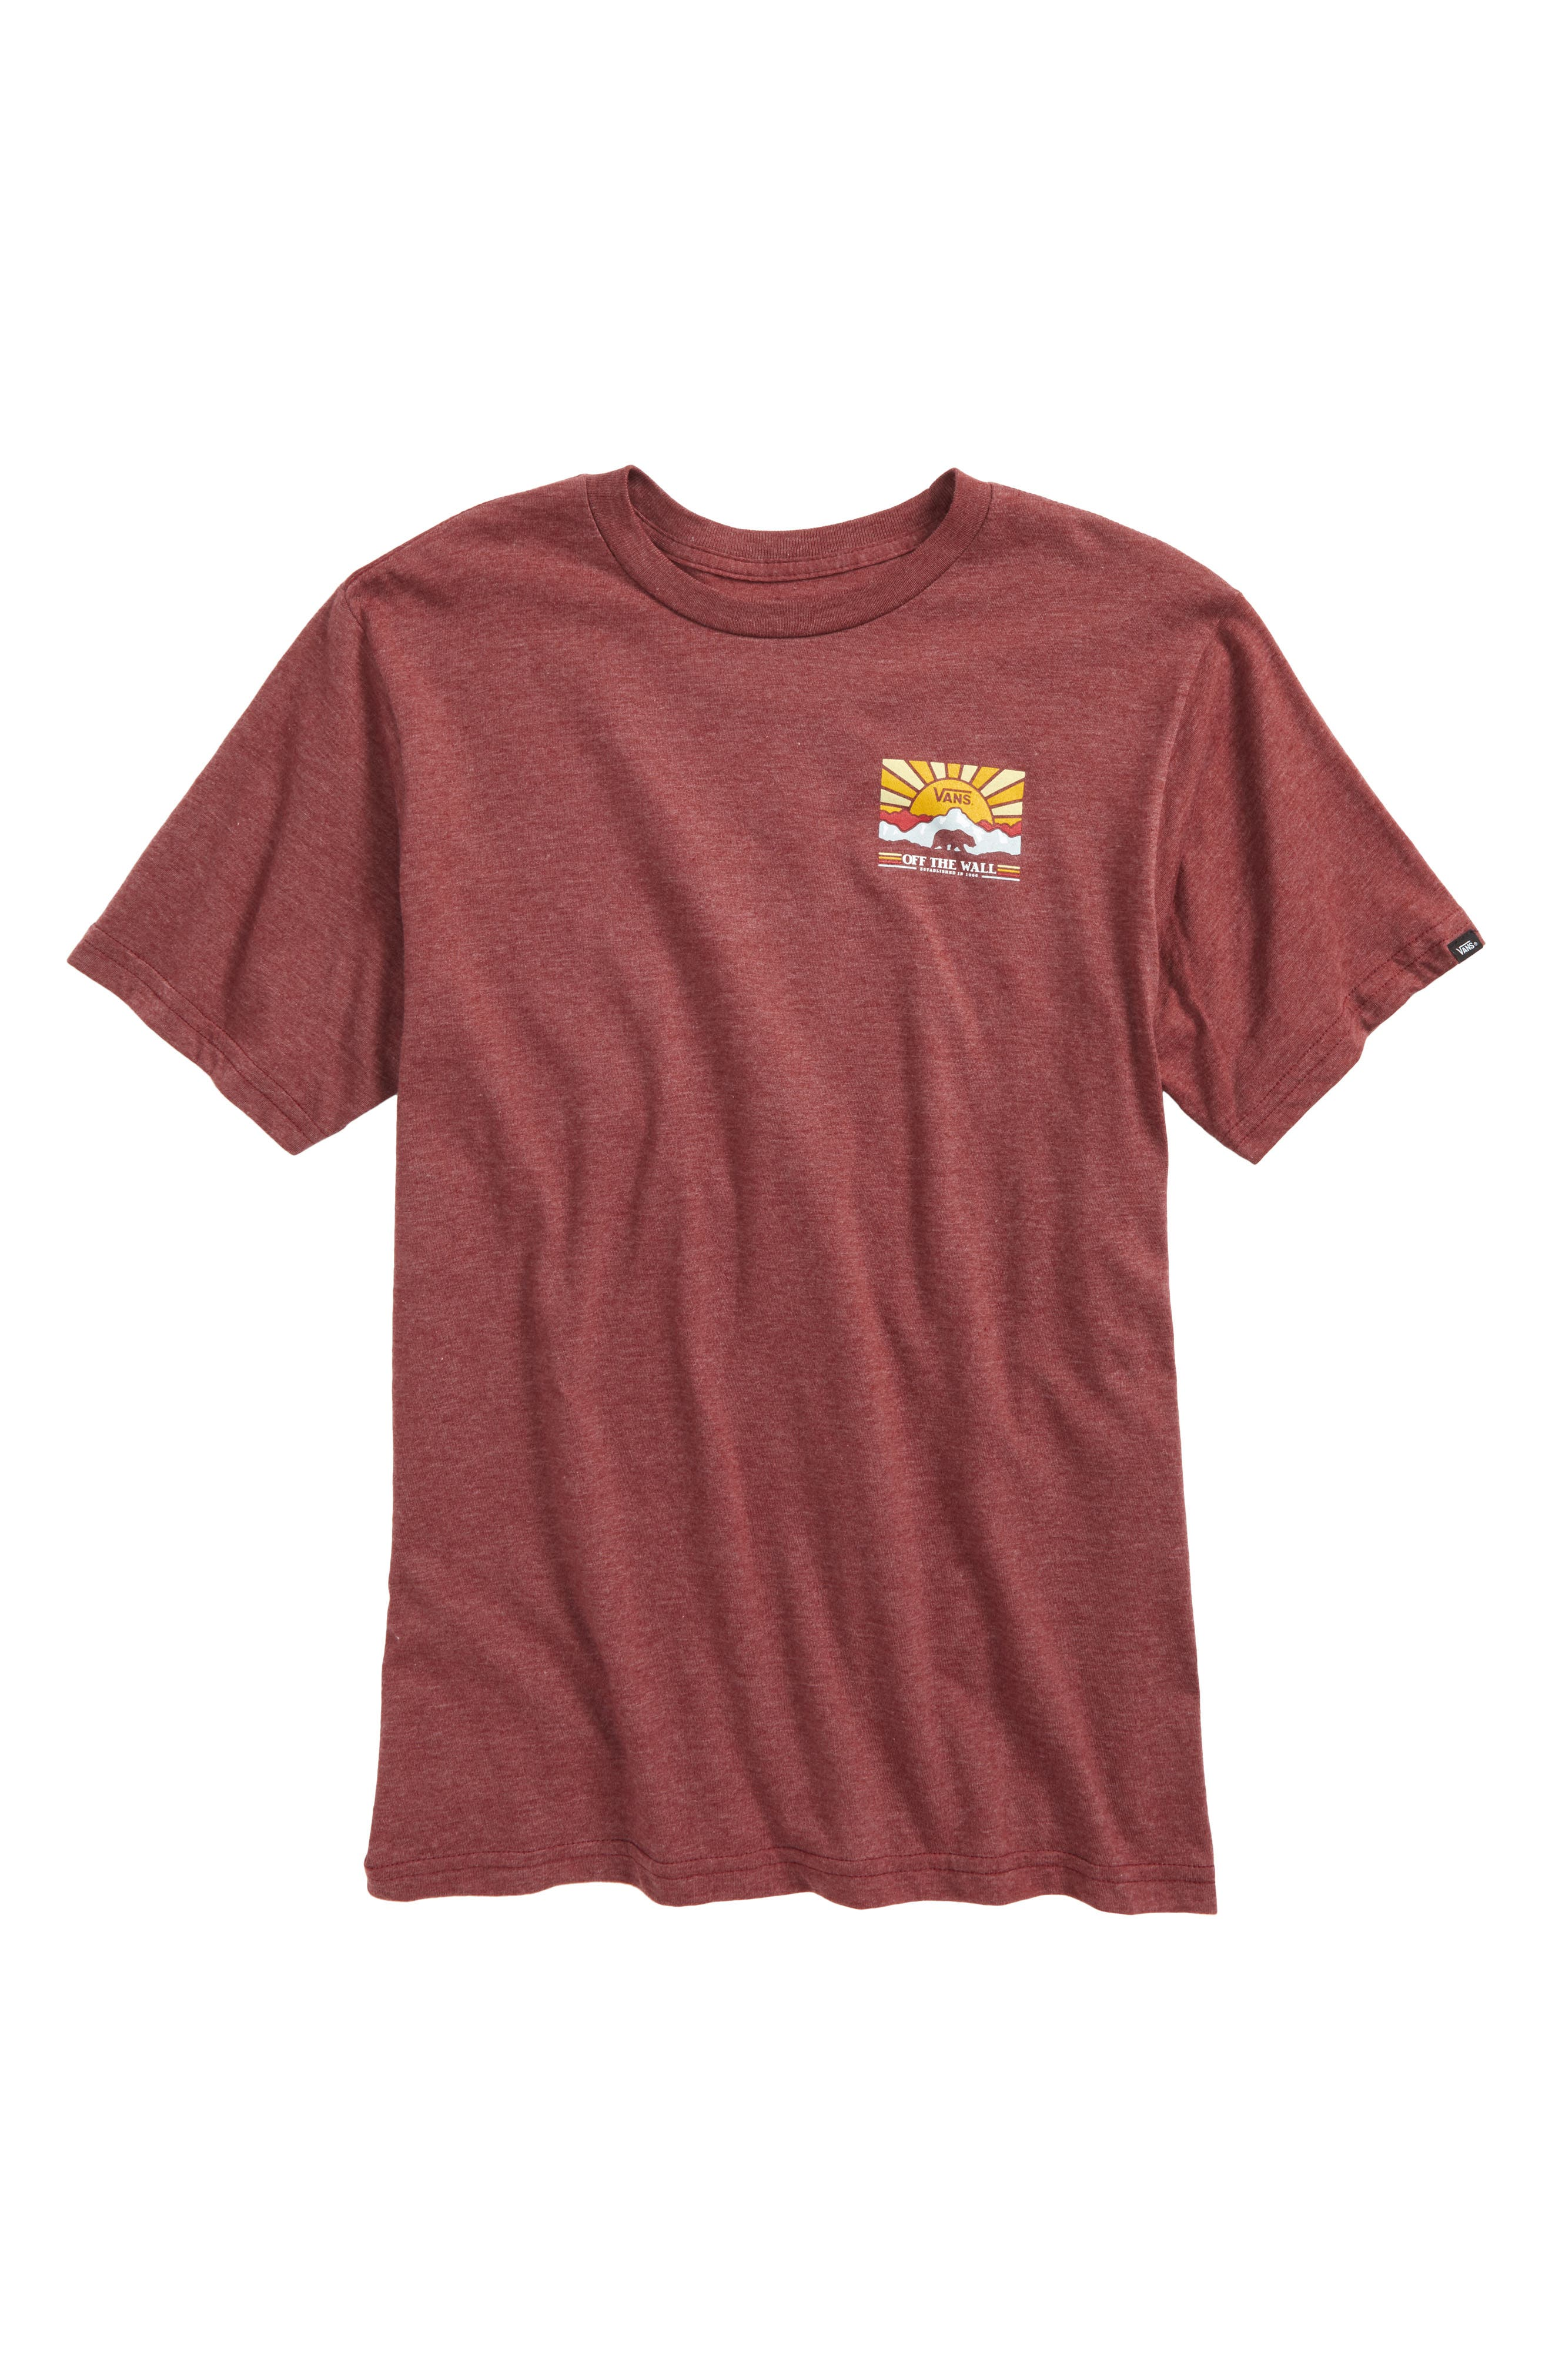 Grizzly Mountain Graphic T-Shirt,                         Main,                         color, Burgundy Heather